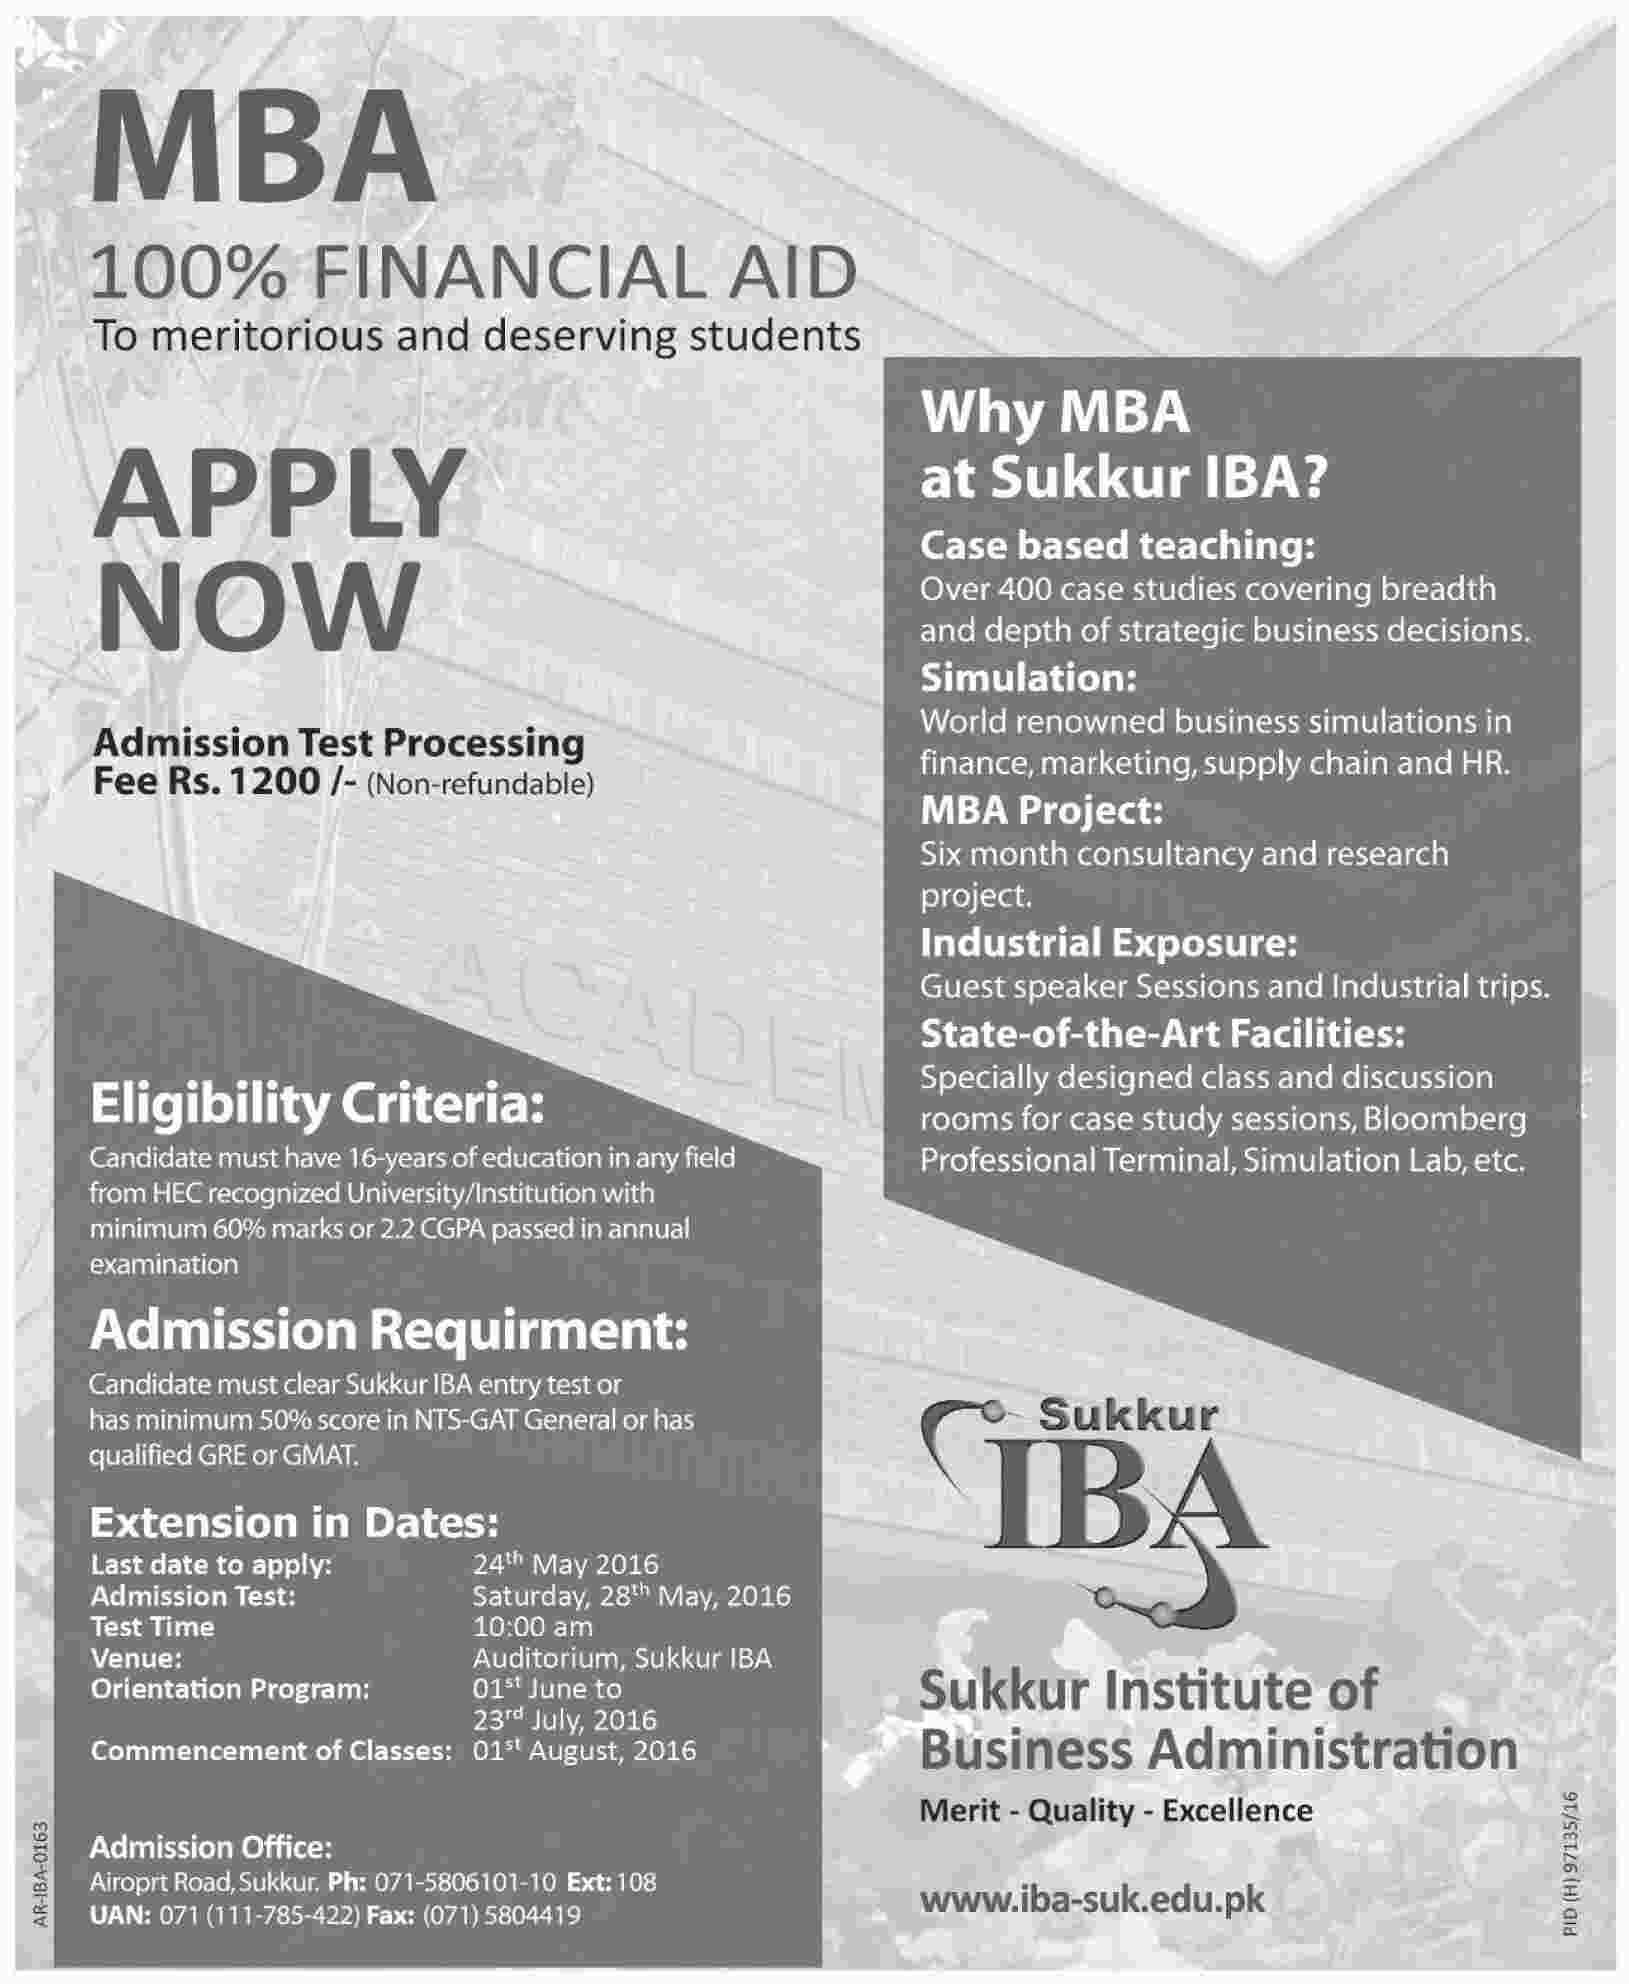 IBA Sukkar Fully Funded MBA Scholarships 2016